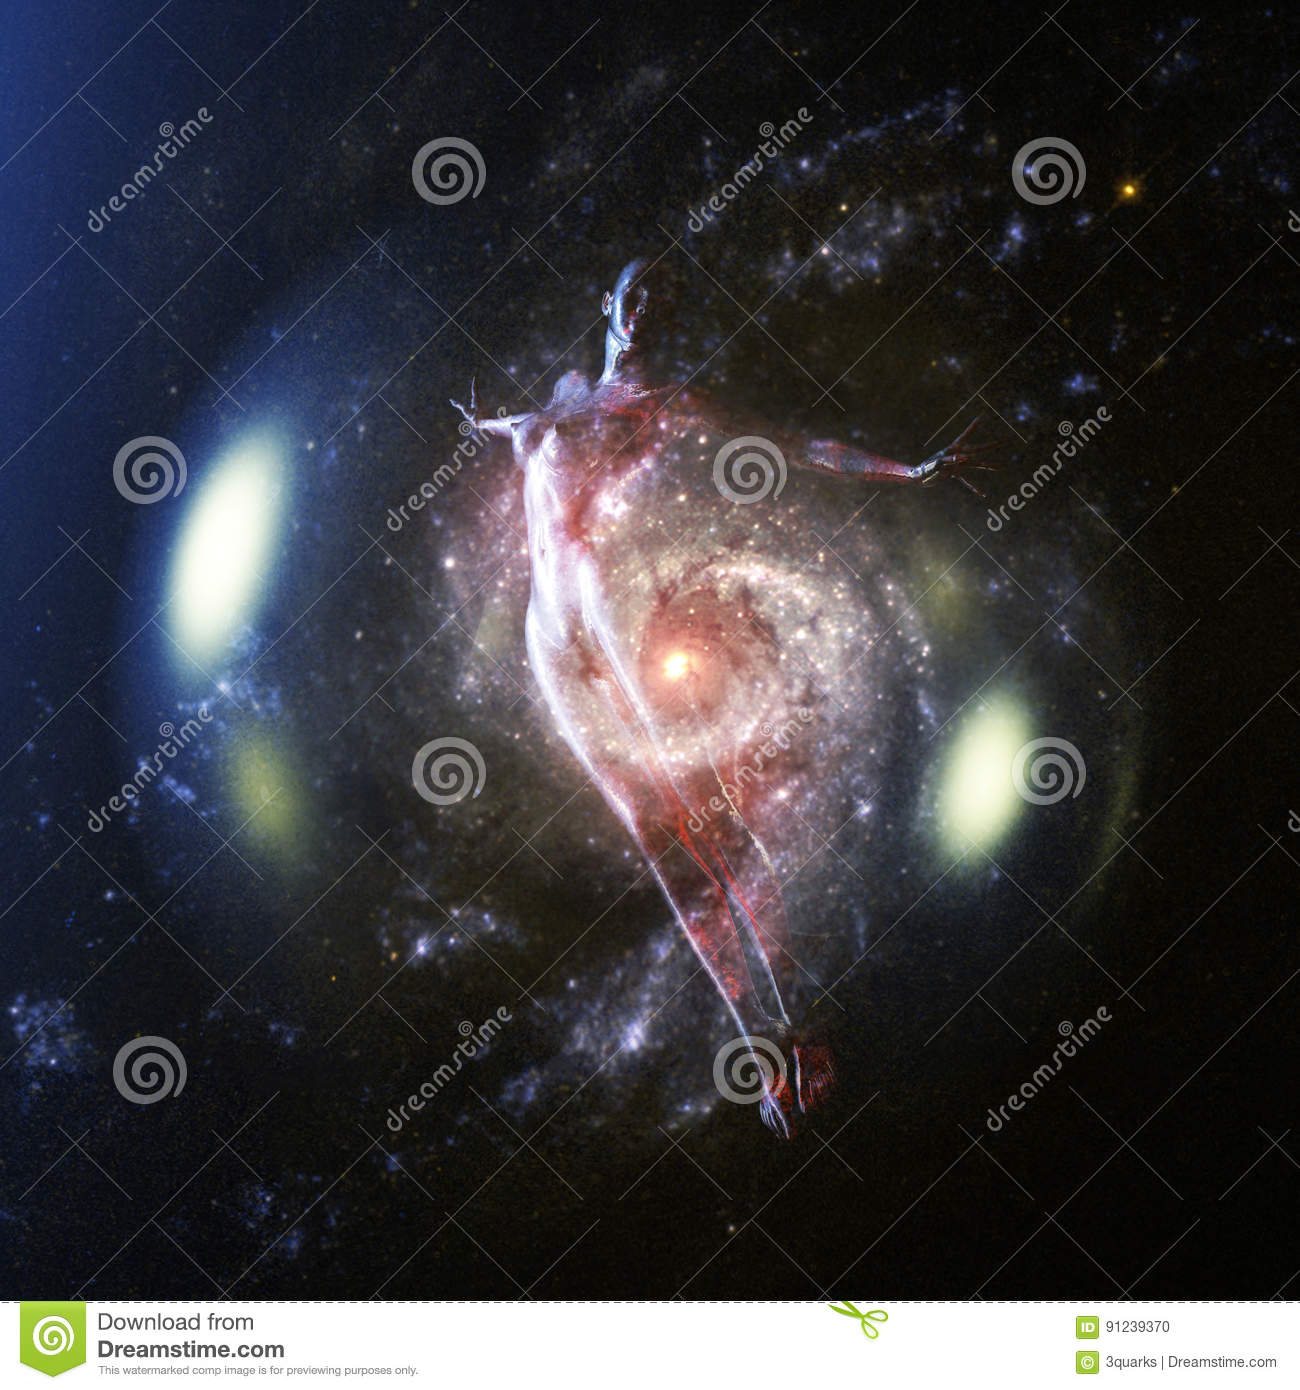 3D Rendering of a Female - Elements by NASA